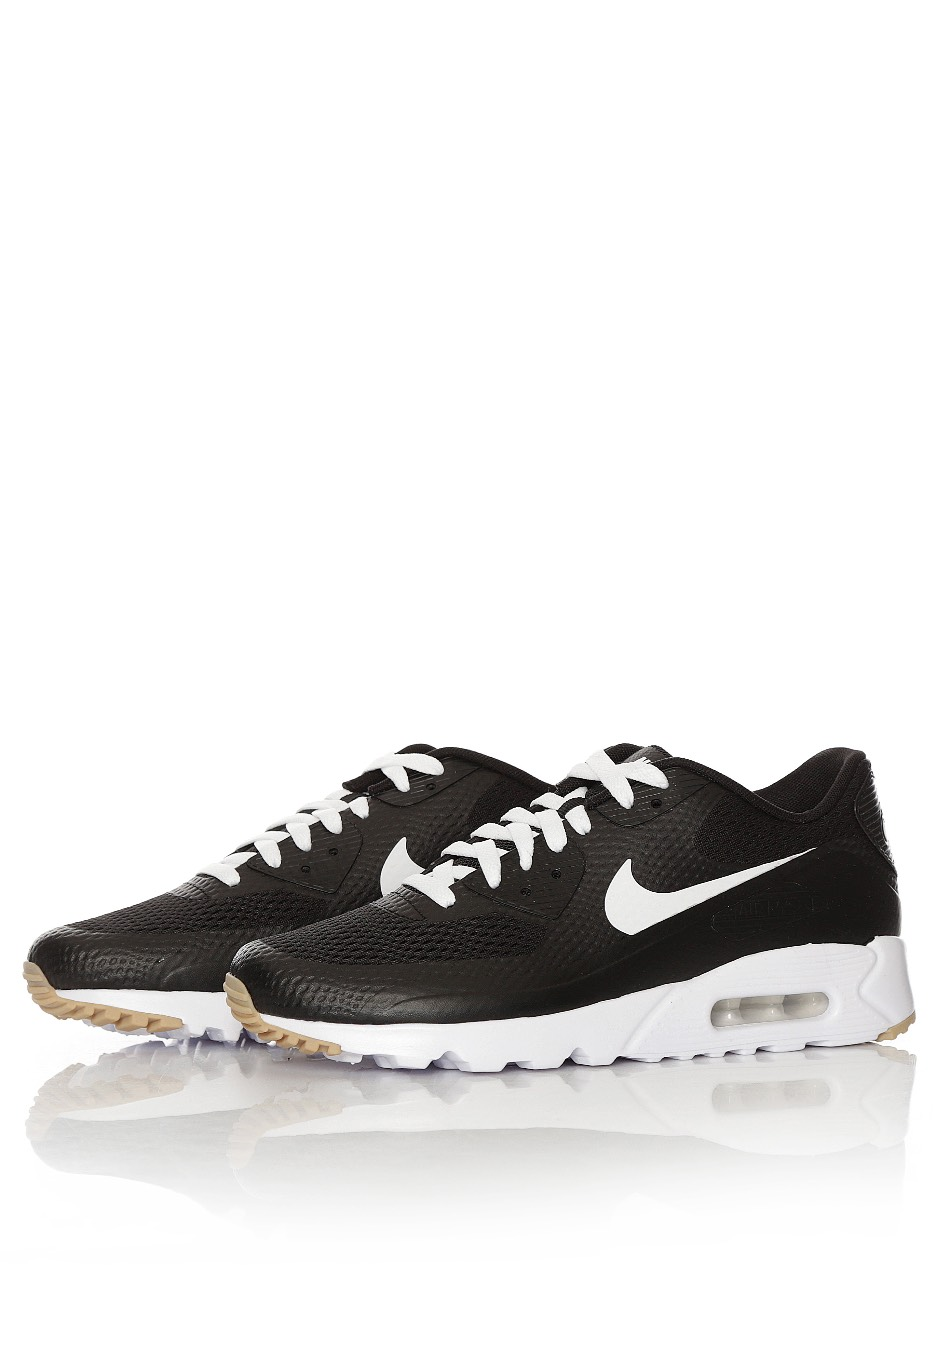 newest e4697 12315 air max 90 essential black white Find the Nike Air Max 90 Essential Men s  ...